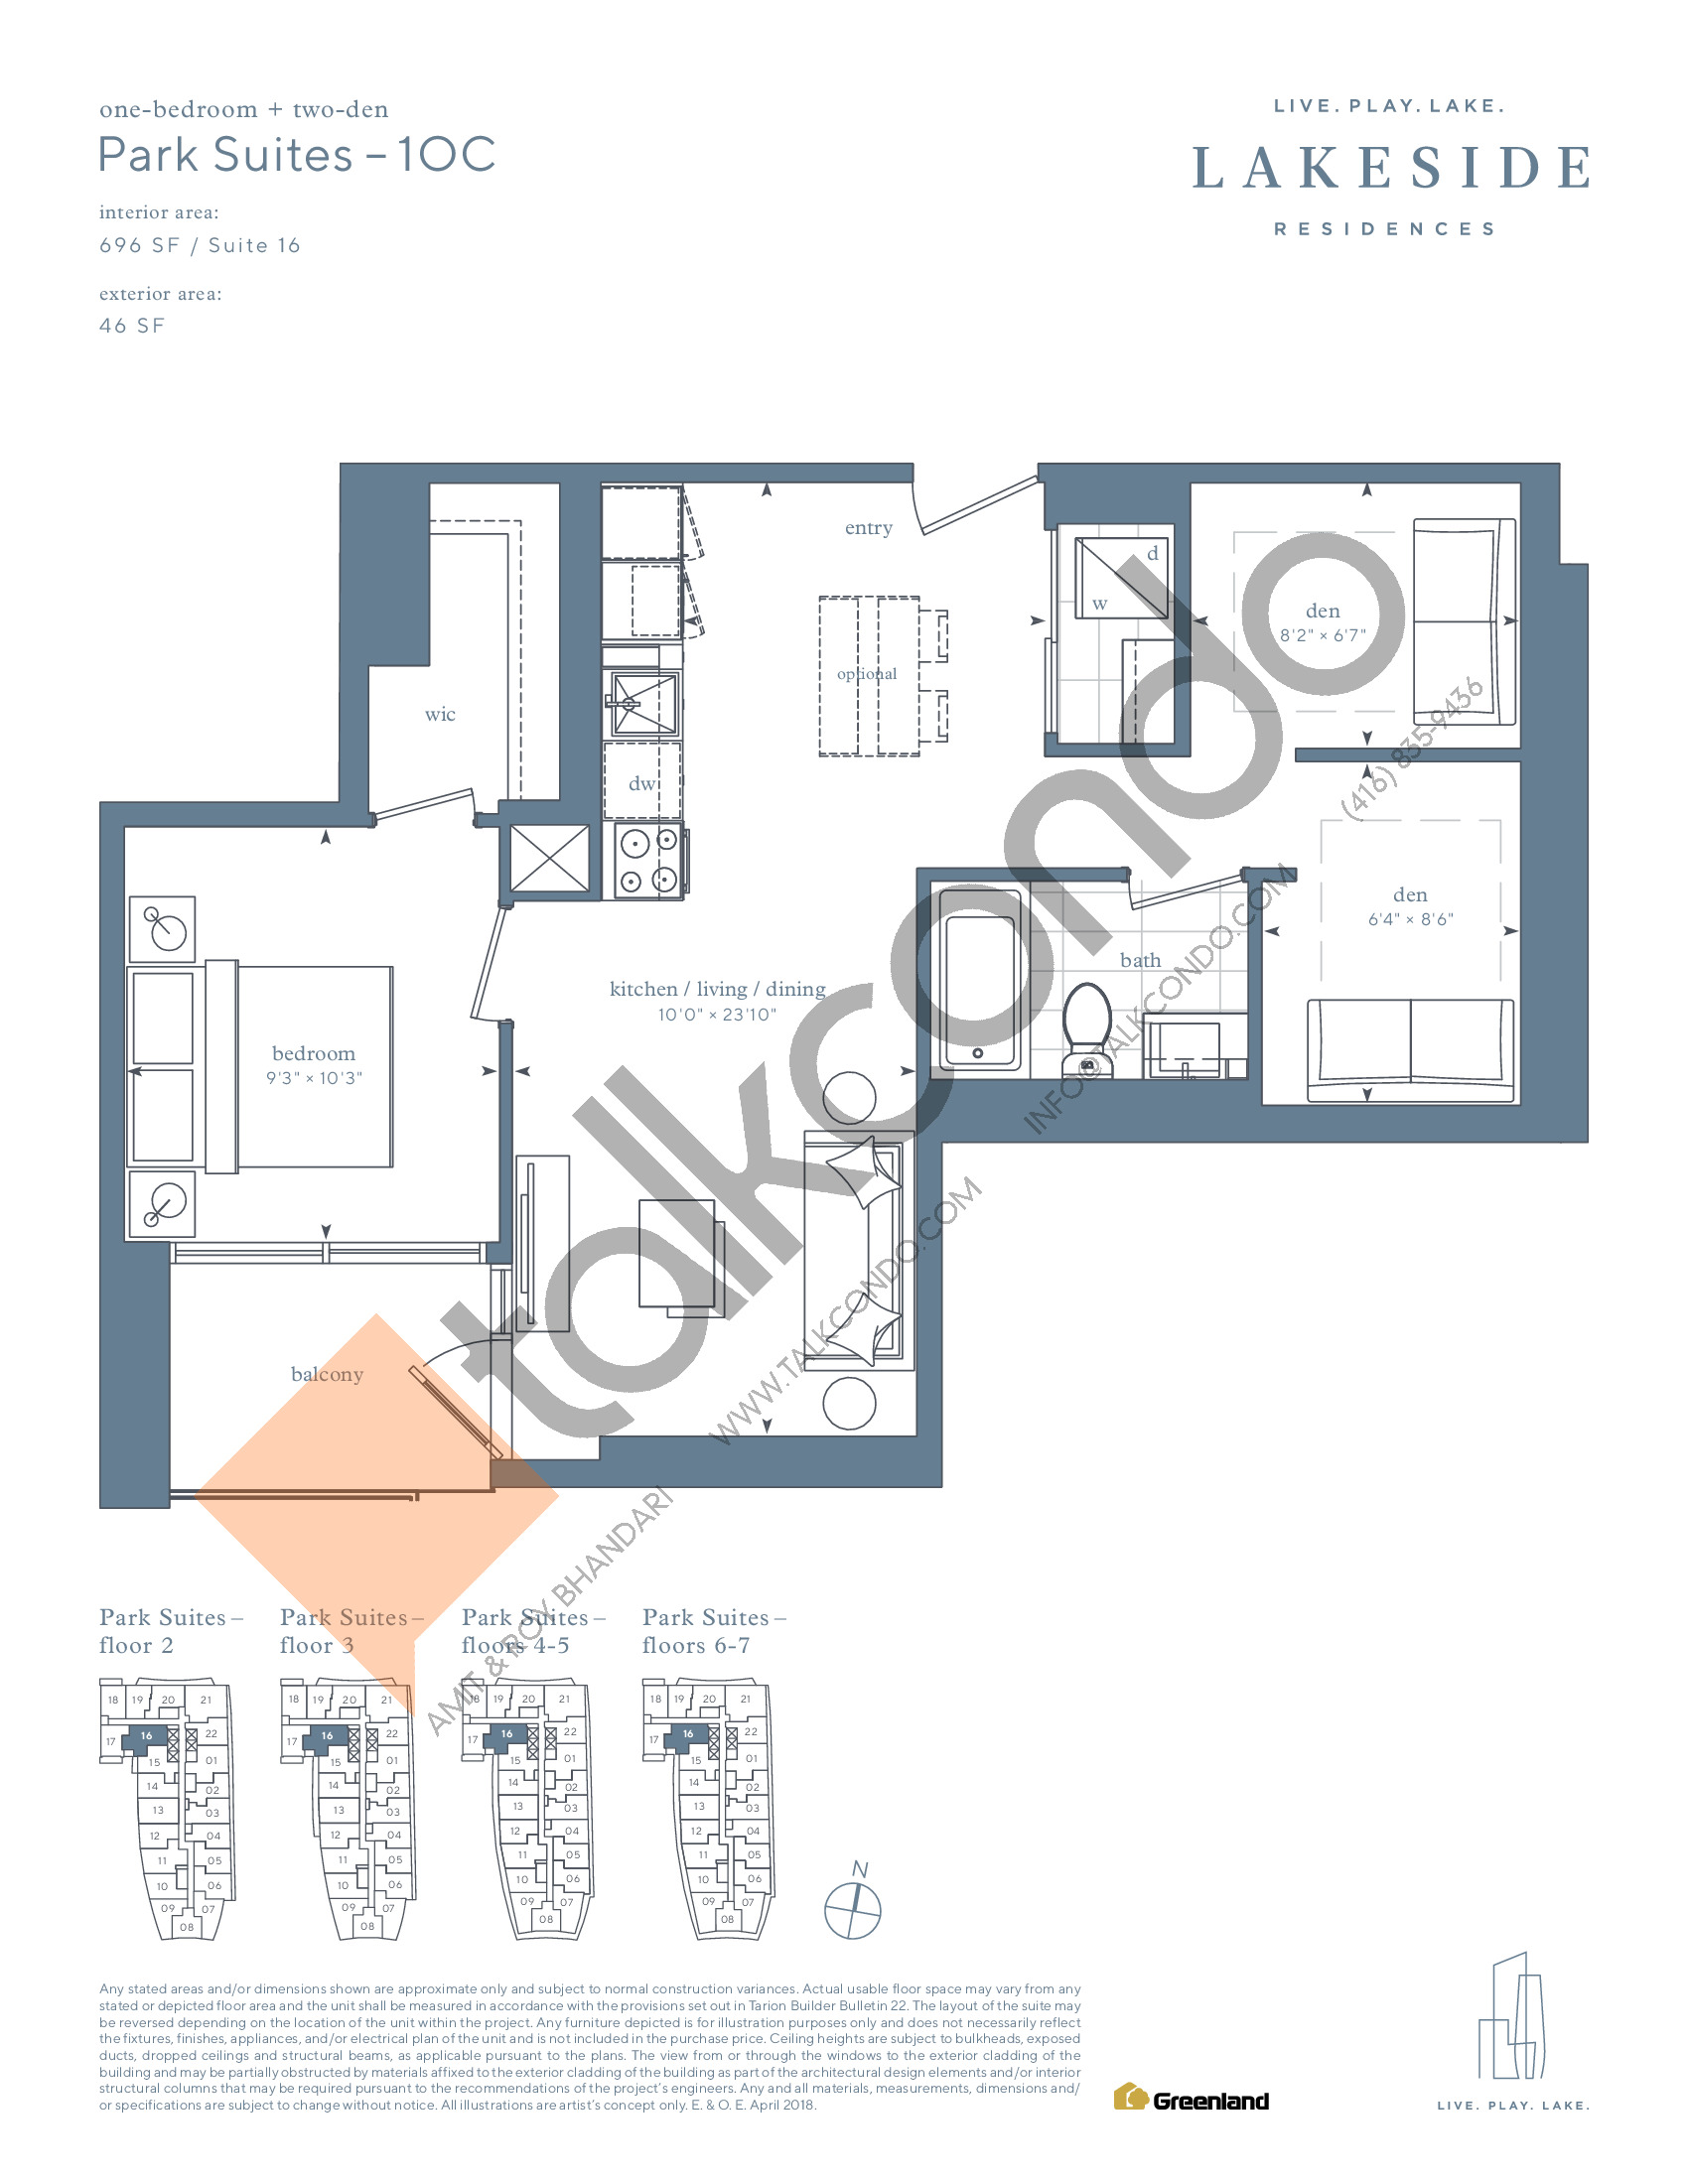 Park Suites - 1OC Floor Plan at Lakeside Residences - 696 sq.ft